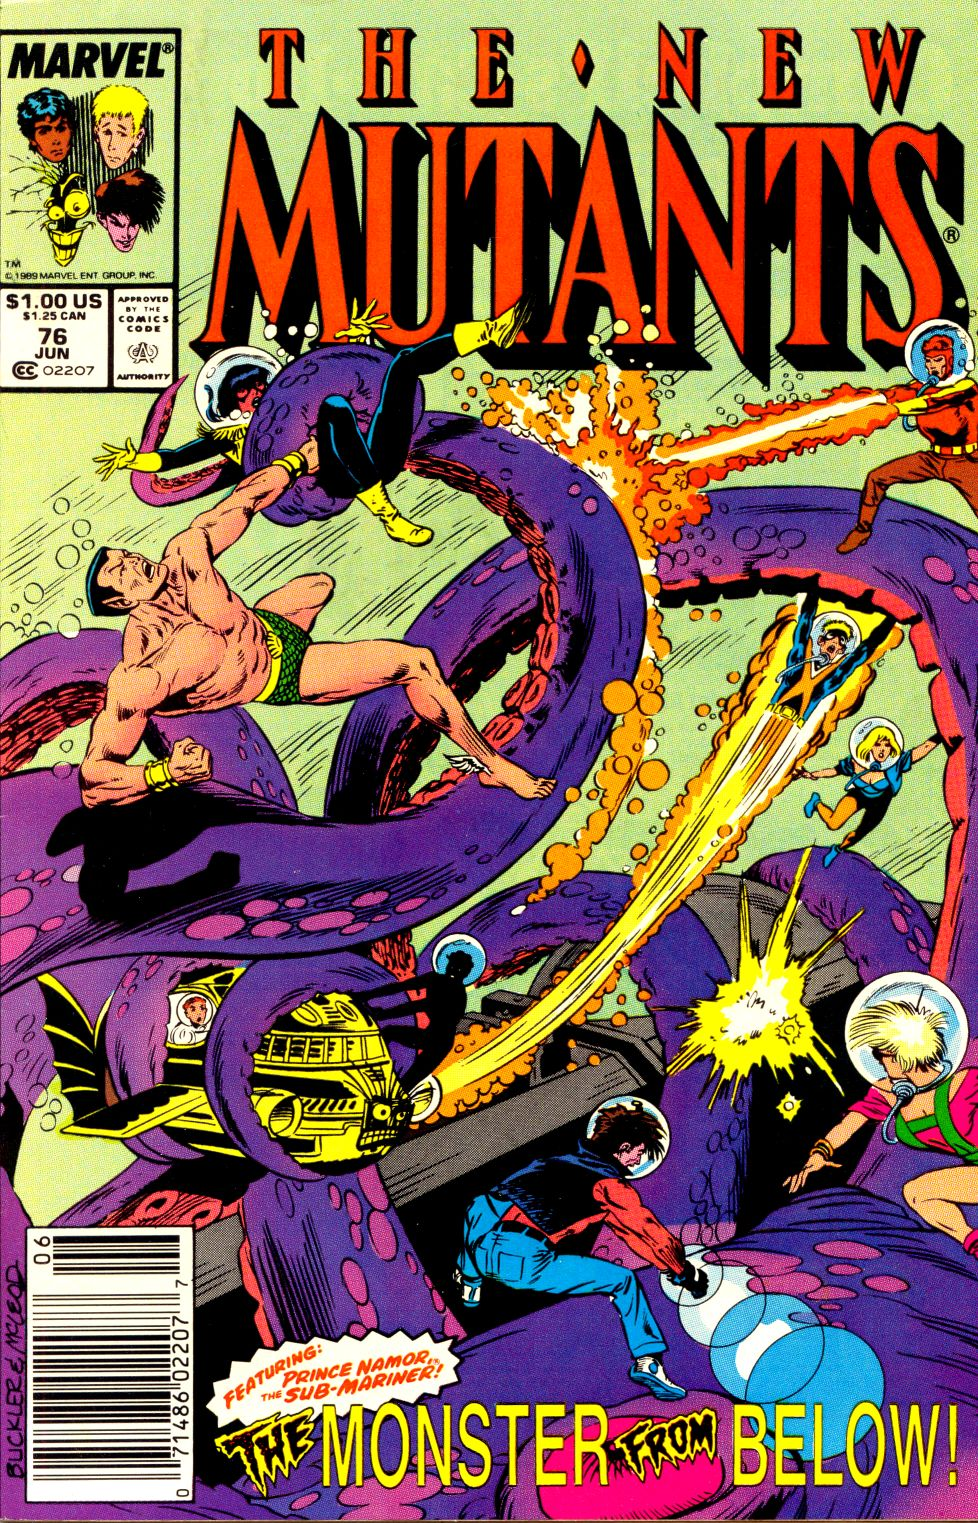 New_Mutants_Vol_1_76.jpg